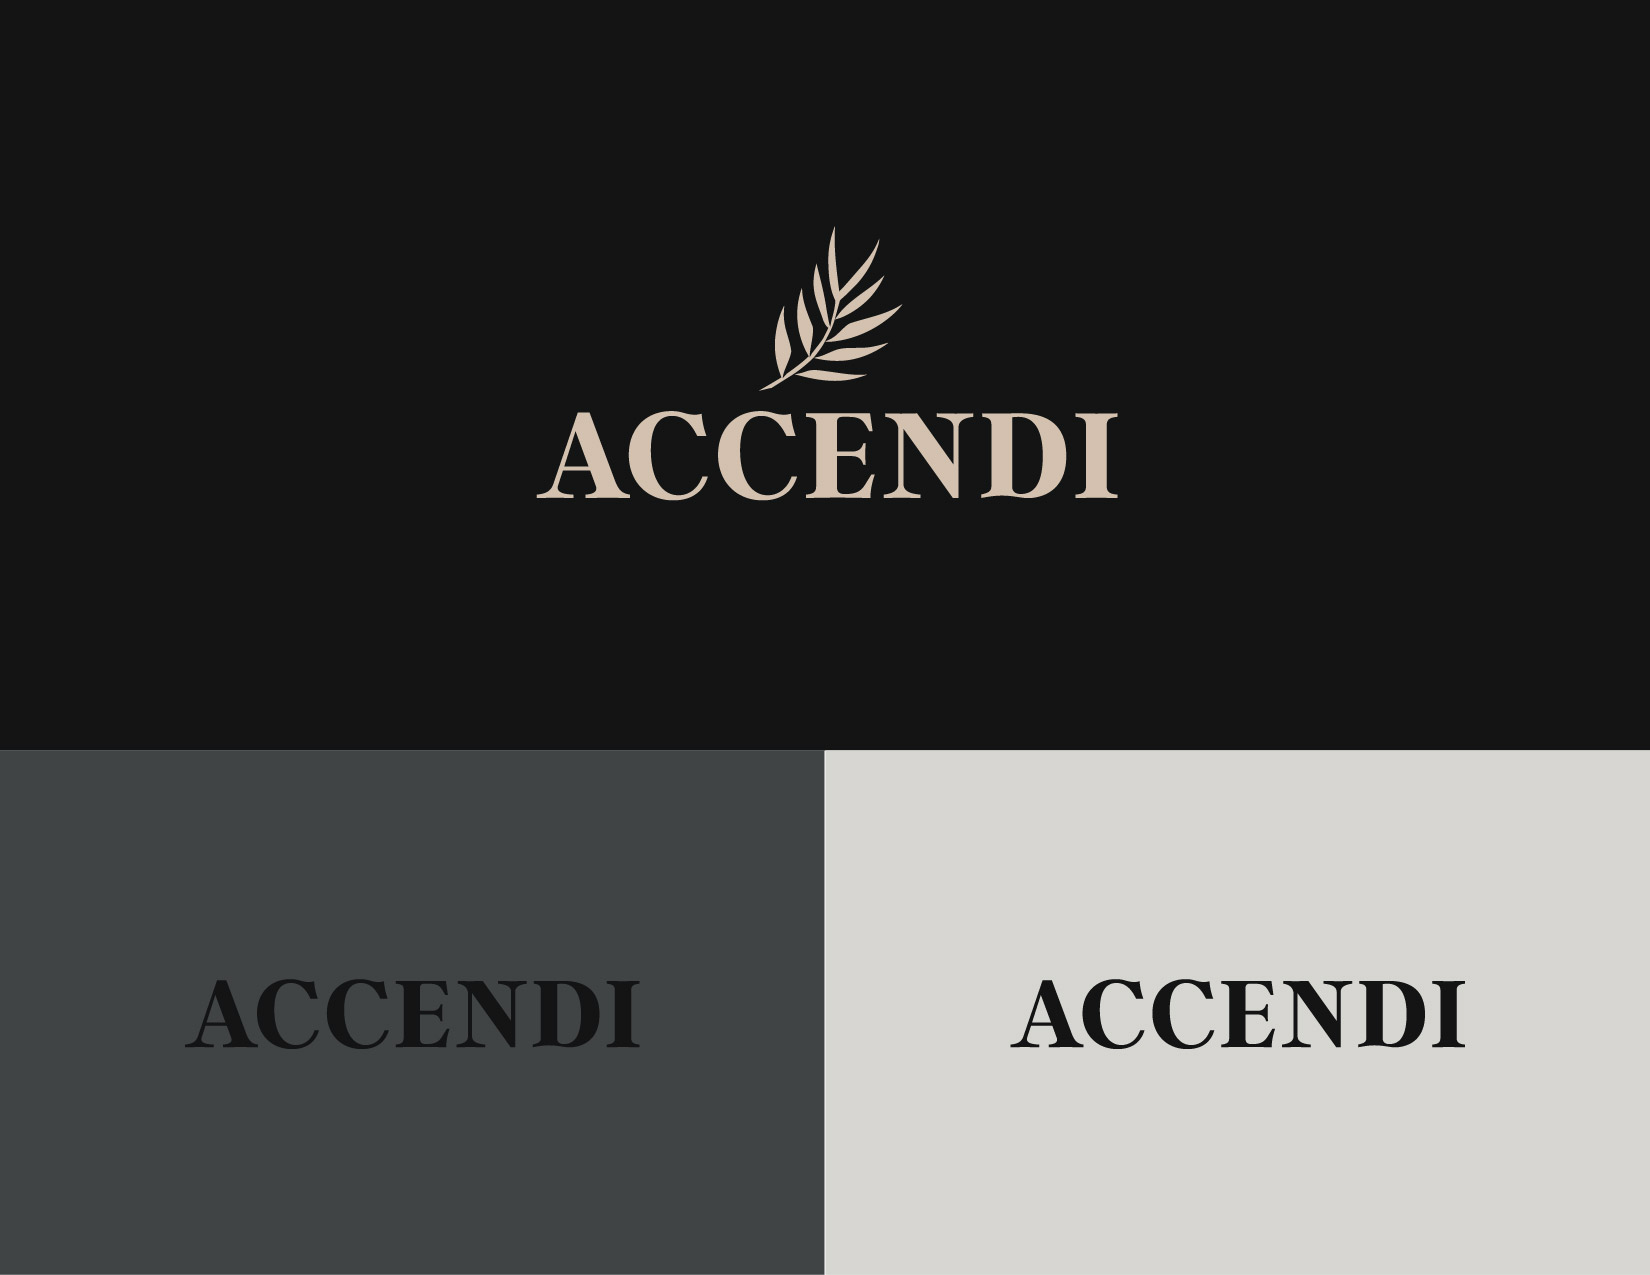 Logo design and branding for Accendi, a handmade clothing brand using hemp and organic materials based out of Chicago. James Cannella Marketing, Design, and Artificial Intelligence Consulting Services